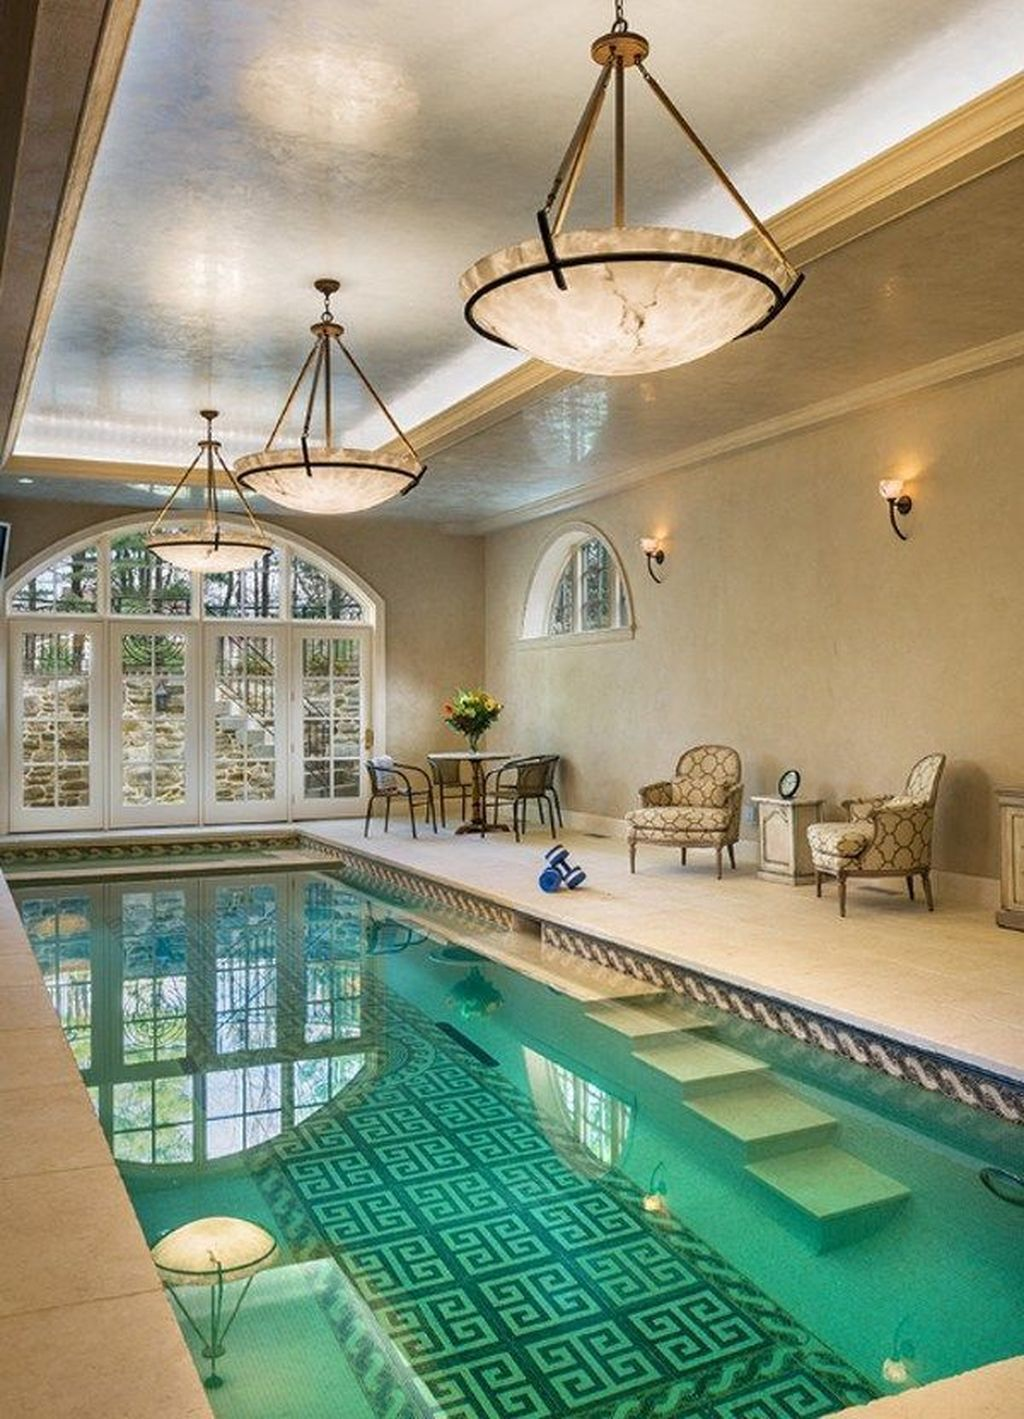 41 Best Inspiration Window Indoor Swimming Pool Design Ideas With Pictures Luxury Swimming Pools Indoor Swimming Pool Design Pool Houses